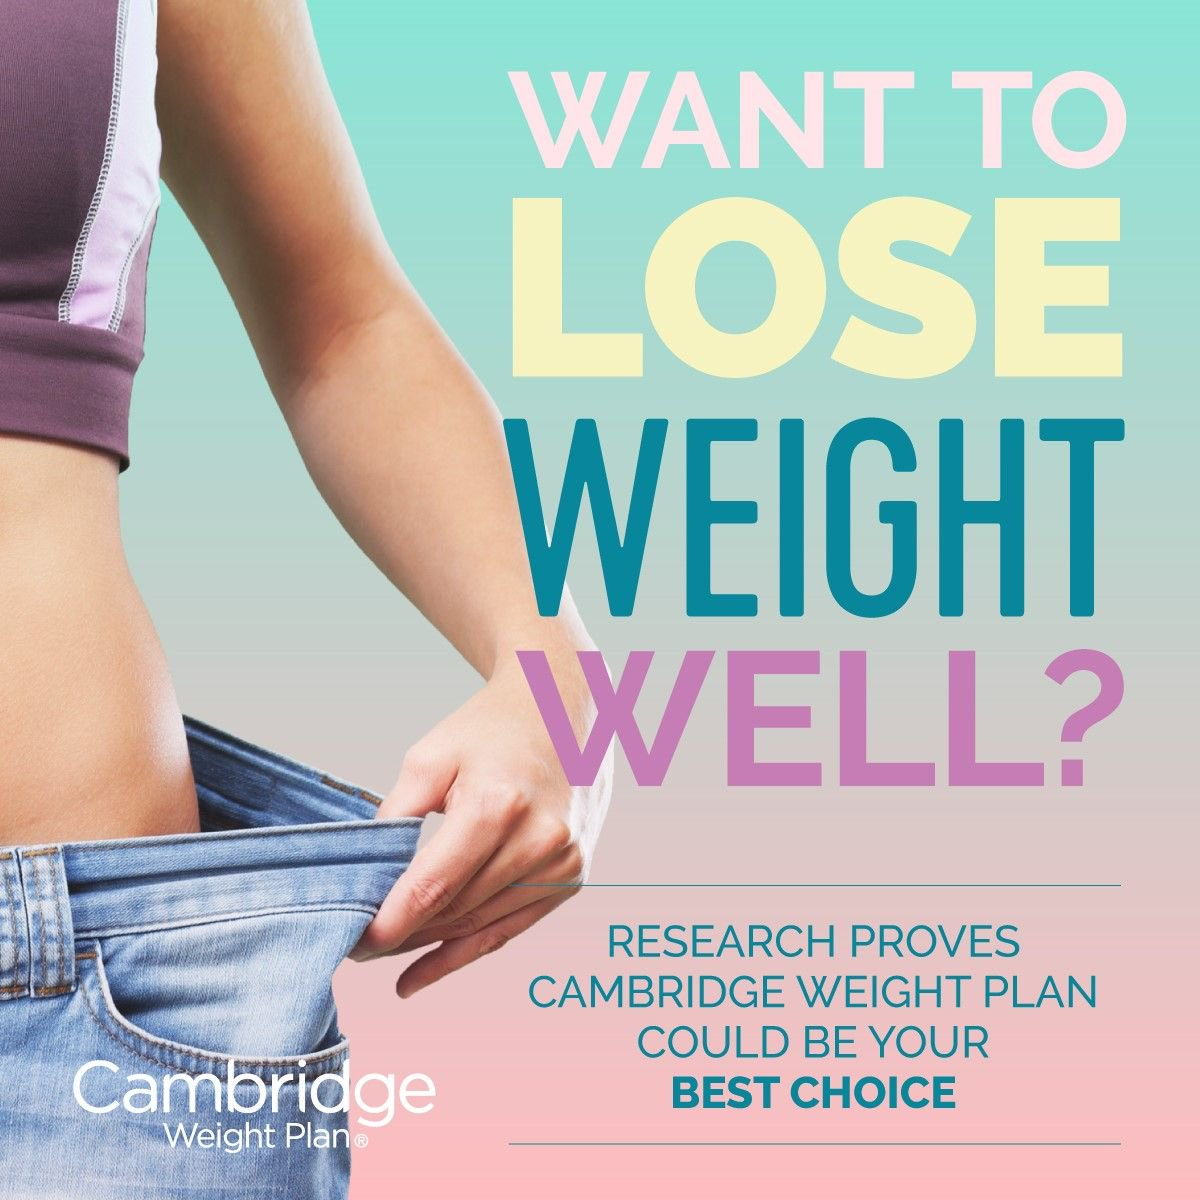 test Twitter Media - Research proves Cambridge Weight Plan could be your best choice #droplet #direct #cambridgeweightplan #cwp #cwpmofrazer #cwpsupport #cwp #weightloss #diabetes #type2 #health #lifestyle #howtoloseweightwell #goodmorningbritain #eastwood #newthorpe #ilkeston https://t.co/5WDB0N2bcr